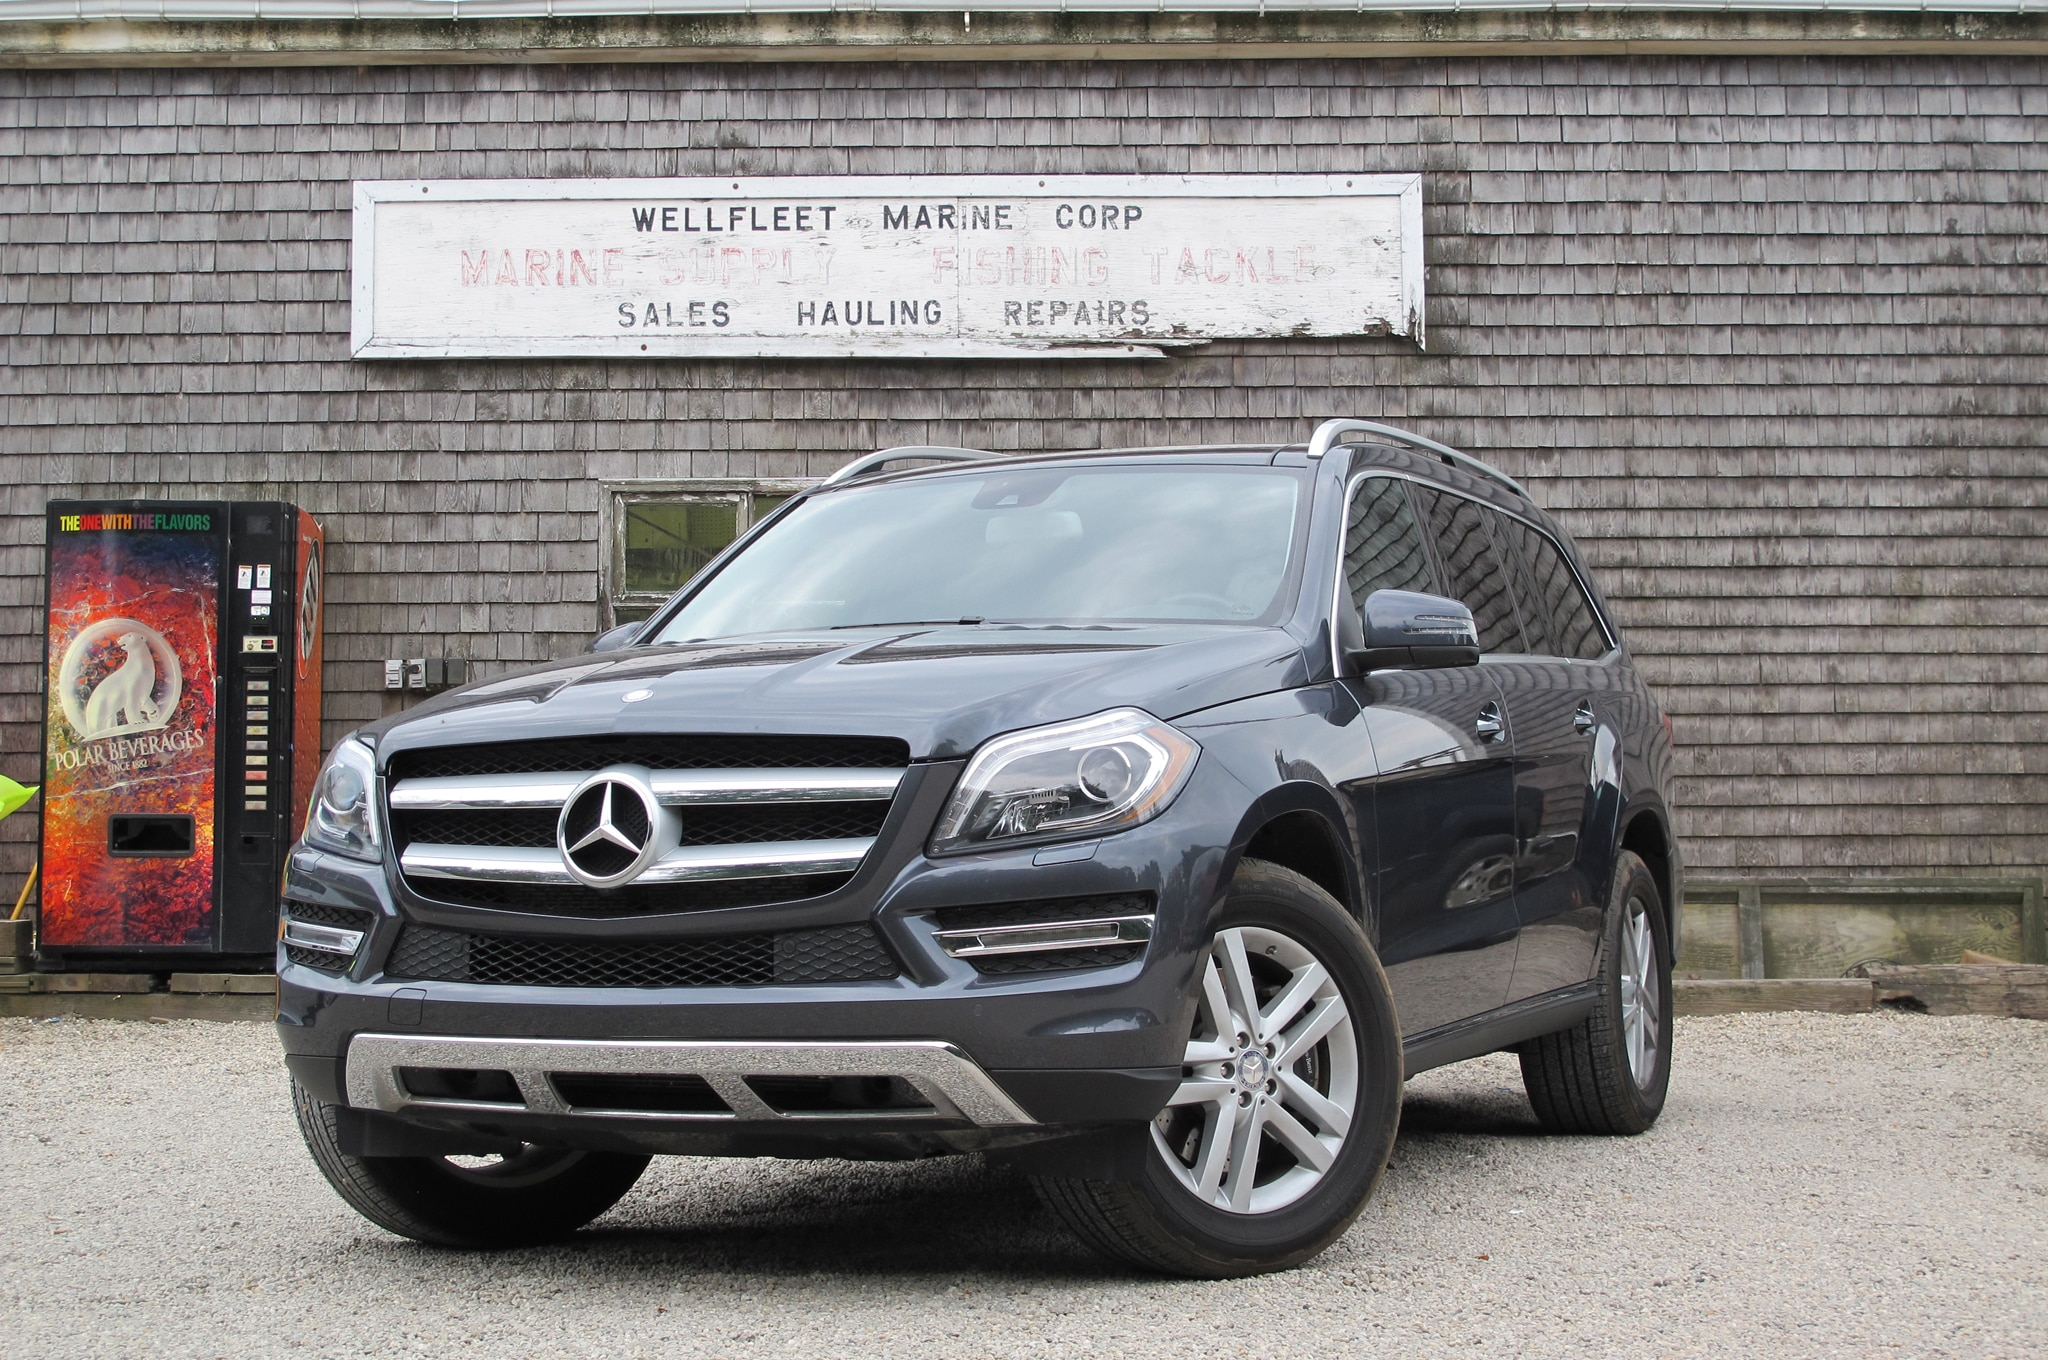 2013-Mercedes-Benz-GL450-front-left-side-view-03.JPG Interesting Info About 2013 Mercedes Gl450 for Sale